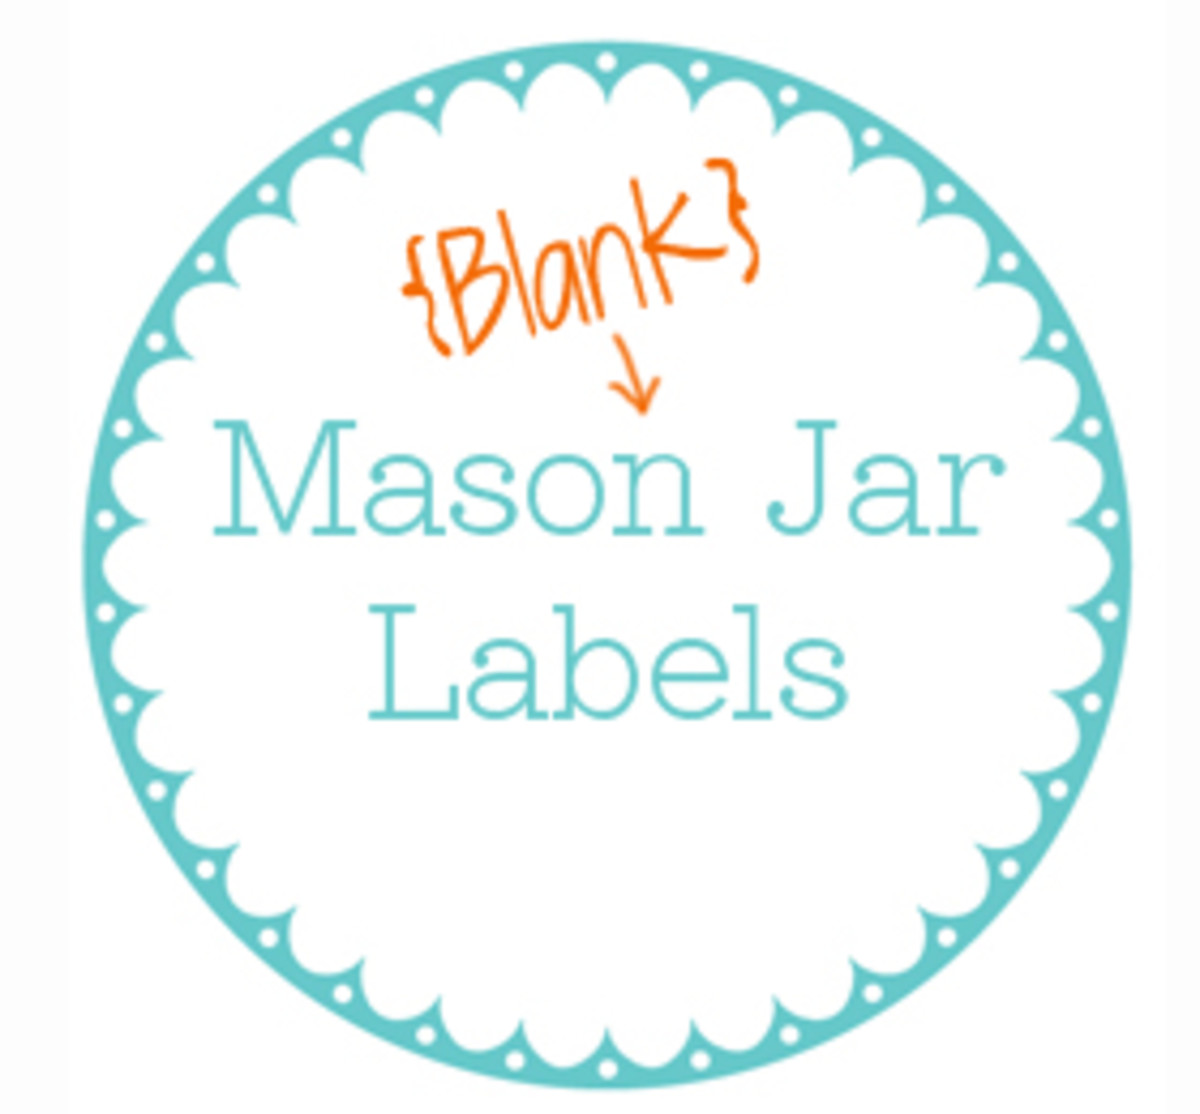 printable jar label template_prev